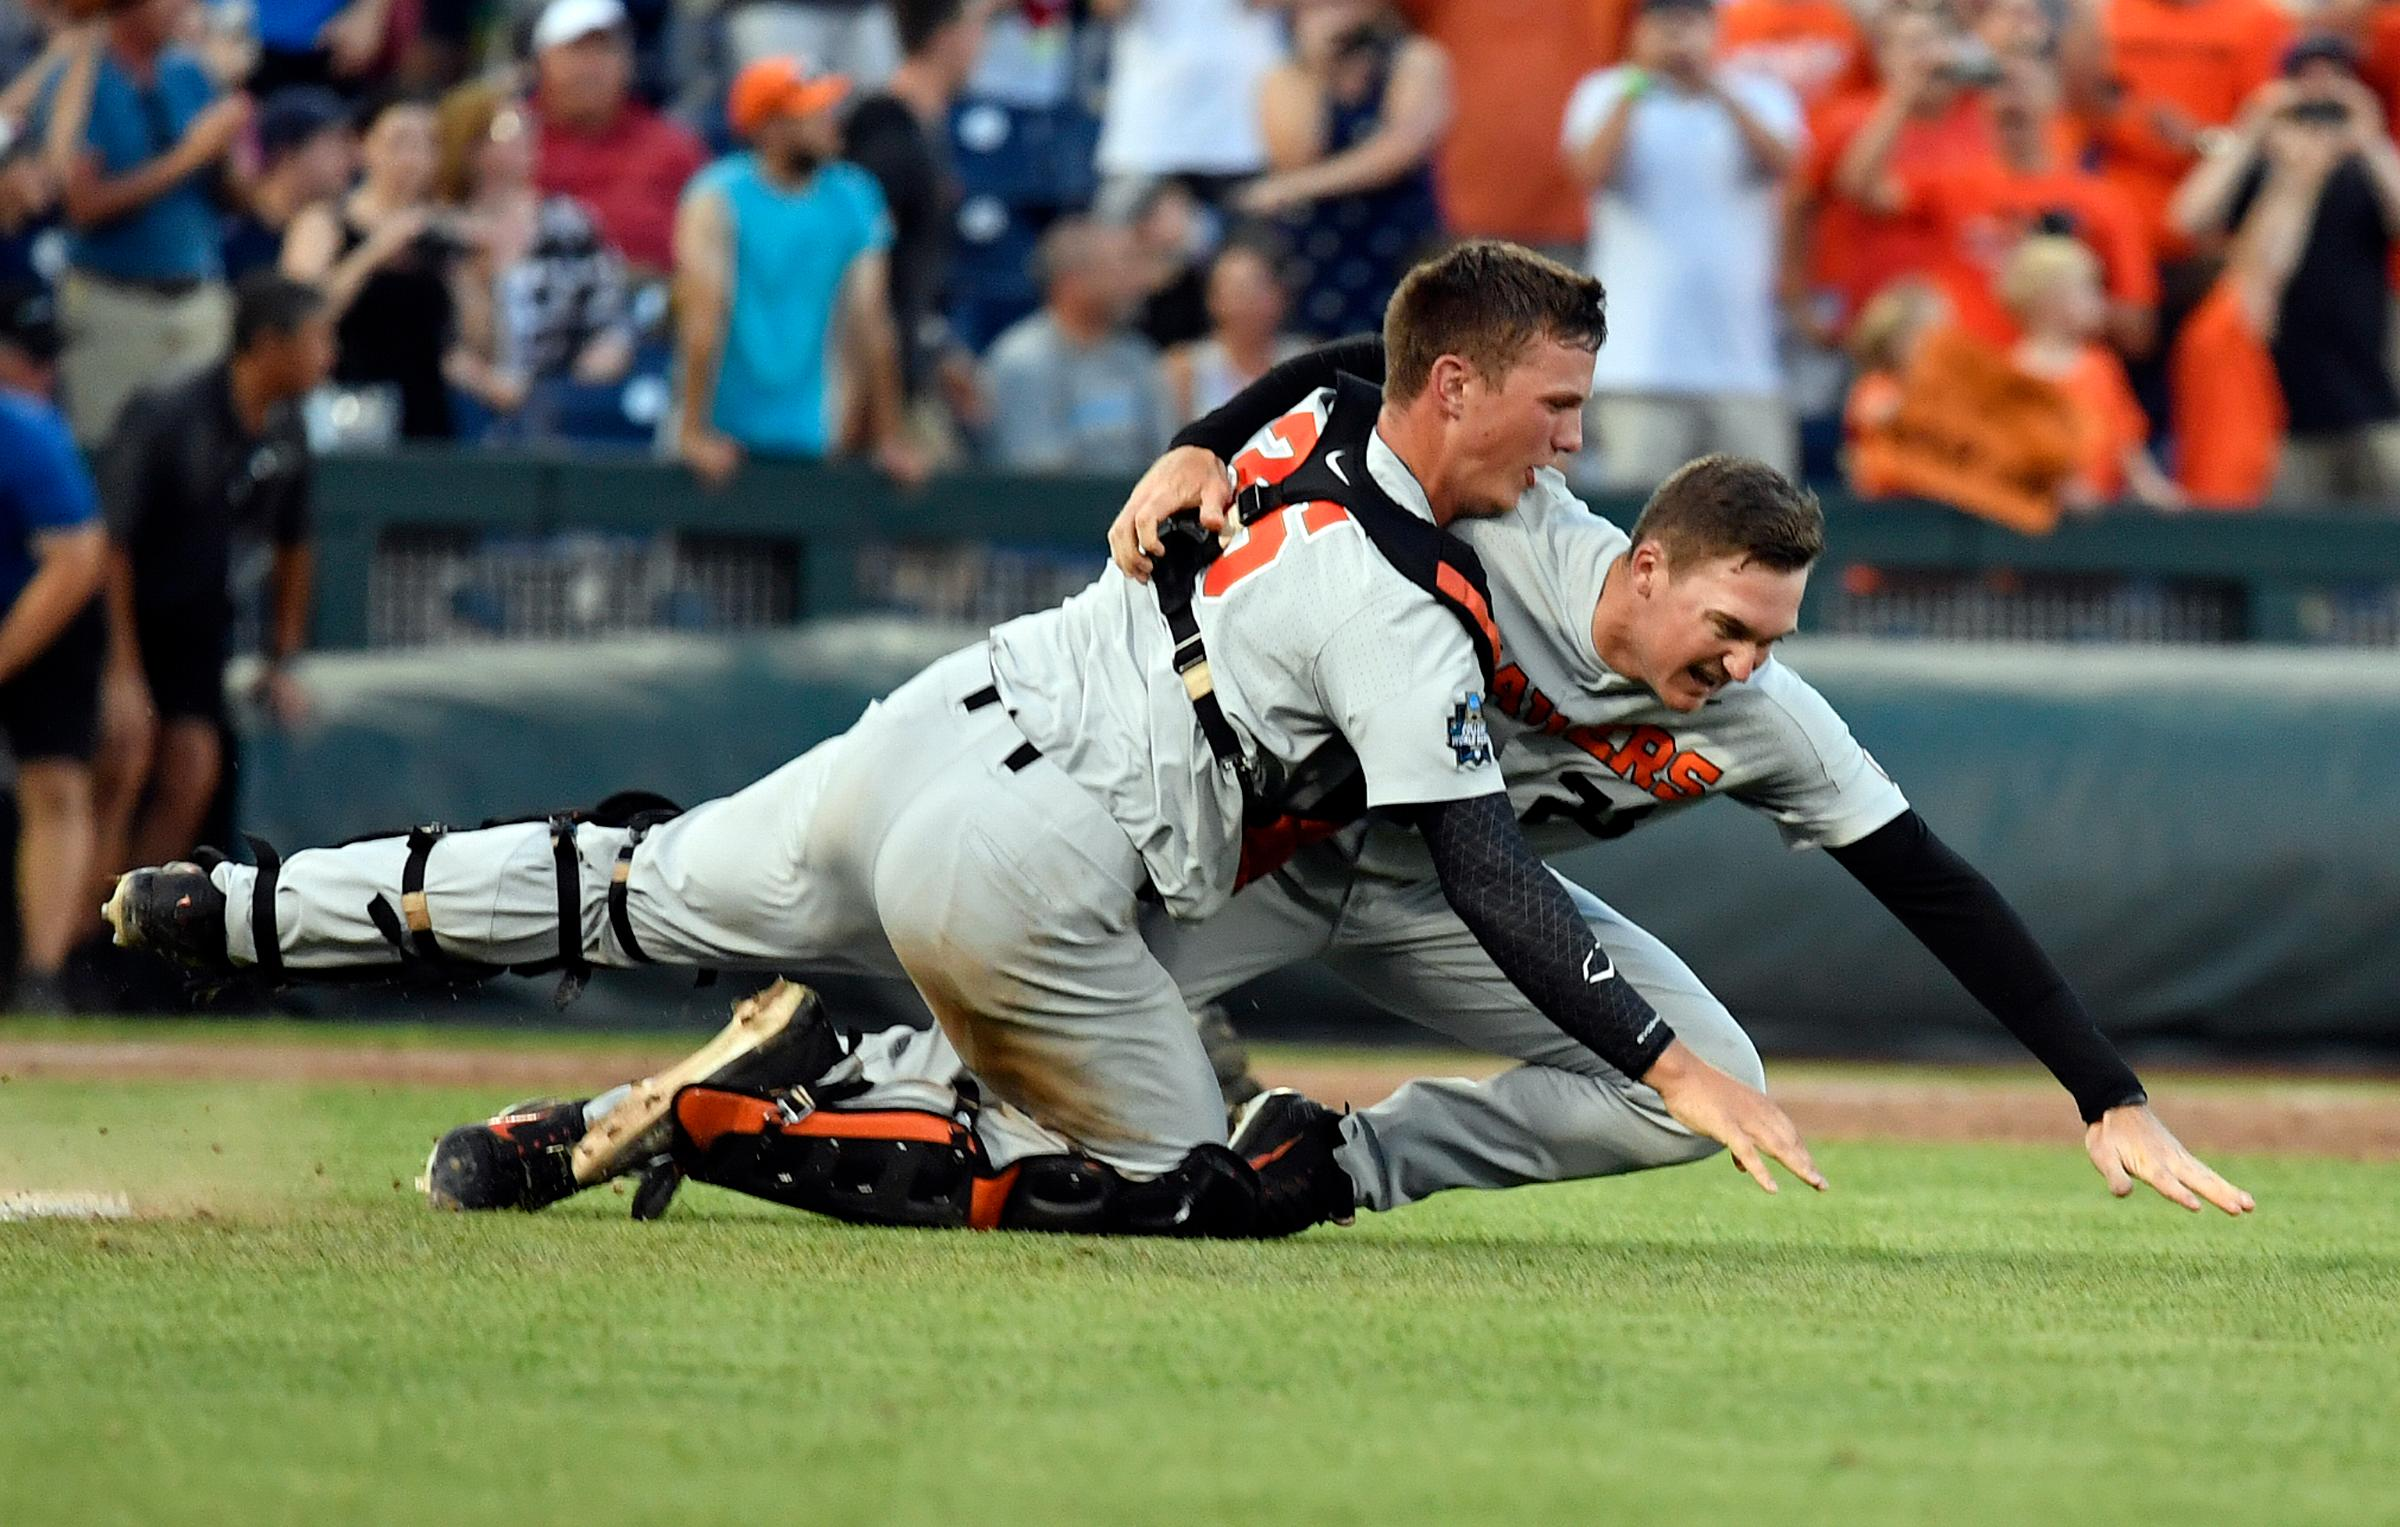 Oregon State's Adley Rutschman, left, tackles Kevin Abel, right, as they celebrate after winning Game 3 of the NCAA College World Series baseball finals in Omaha, Neb., Thursday, June 28, 2018. Oregon State defeated Arkansas 5-0. (AP Photo/Ted Kirk)